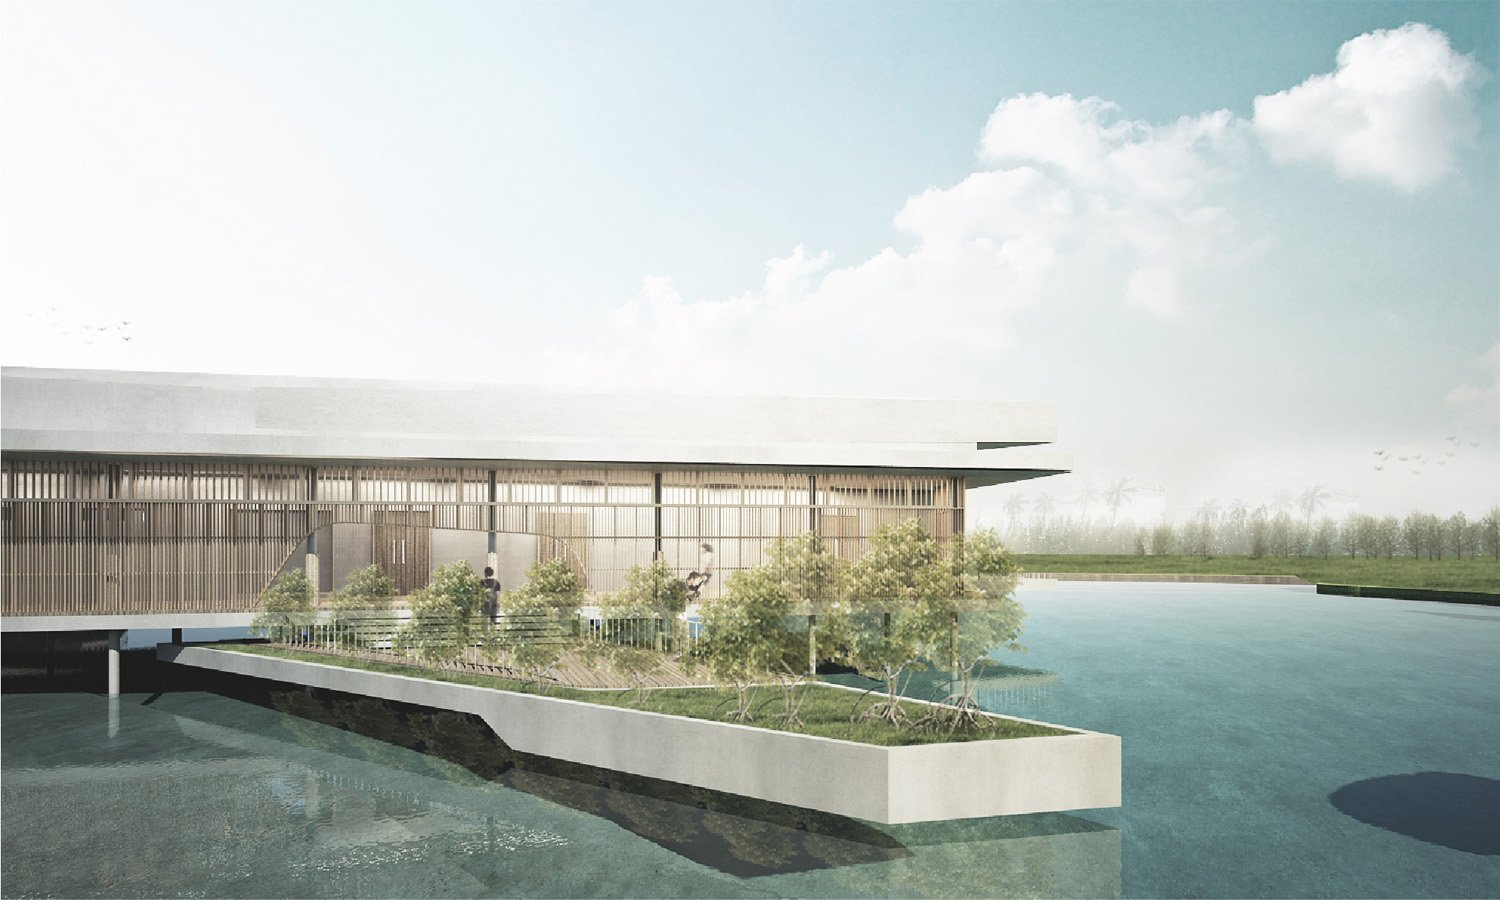 The sunken mangrove terrace for users to have upclose experience Vaslab